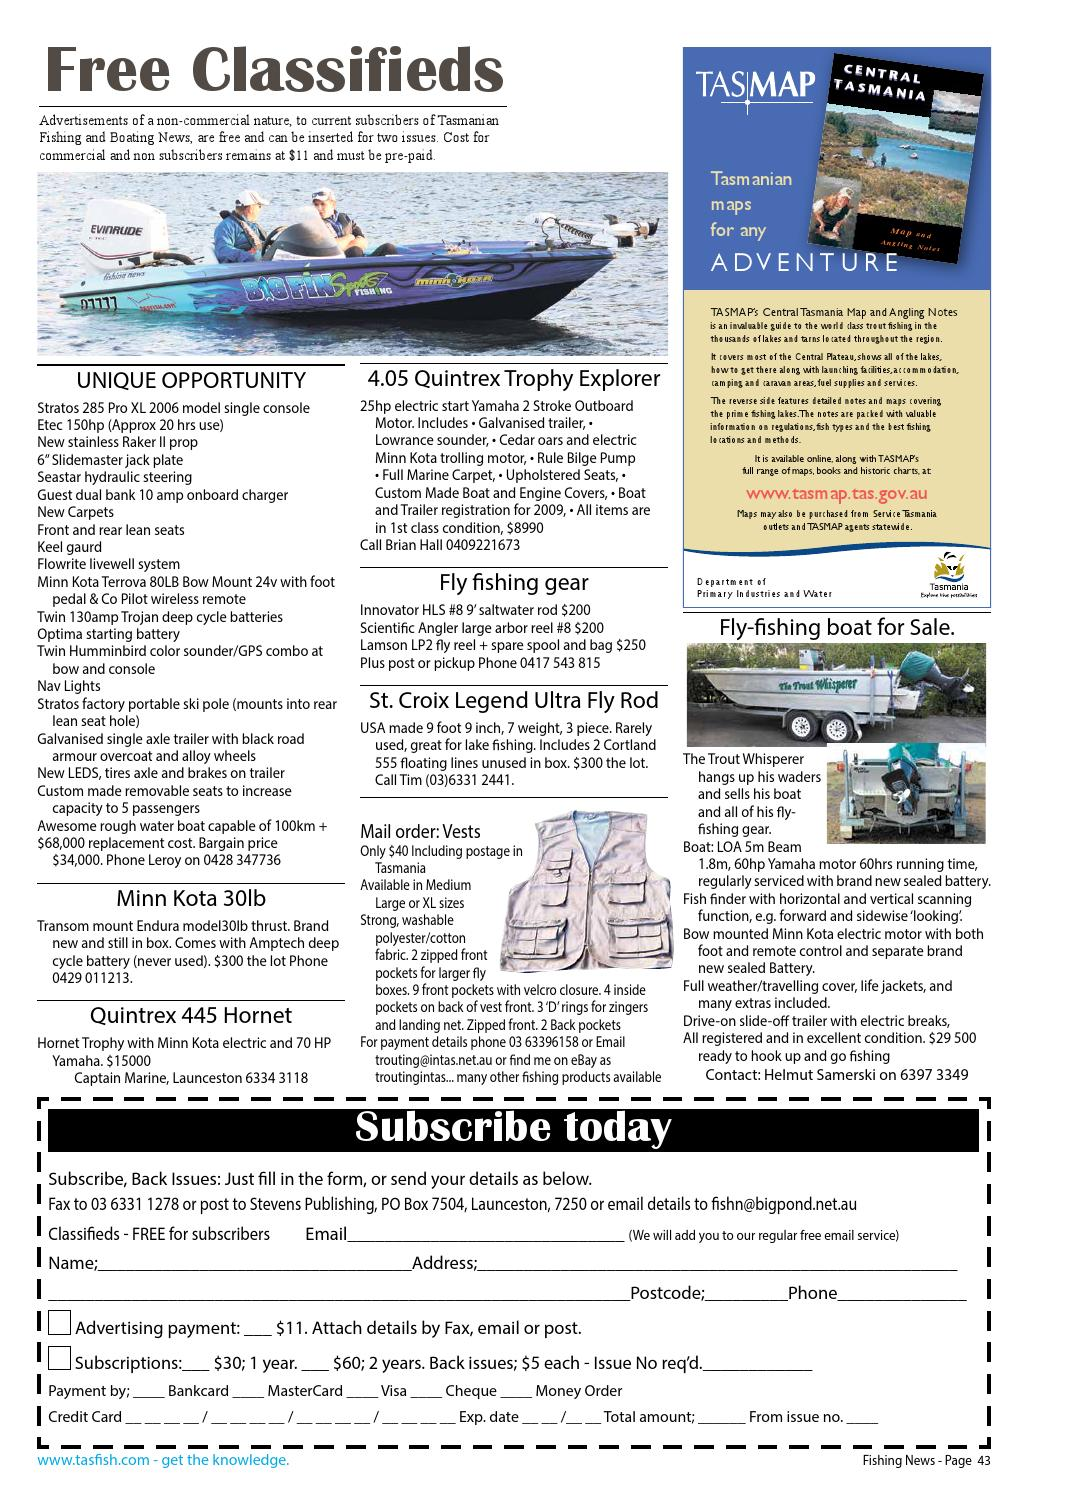 Tasmanian Fishing and Boating News Issue 081 2009 August by